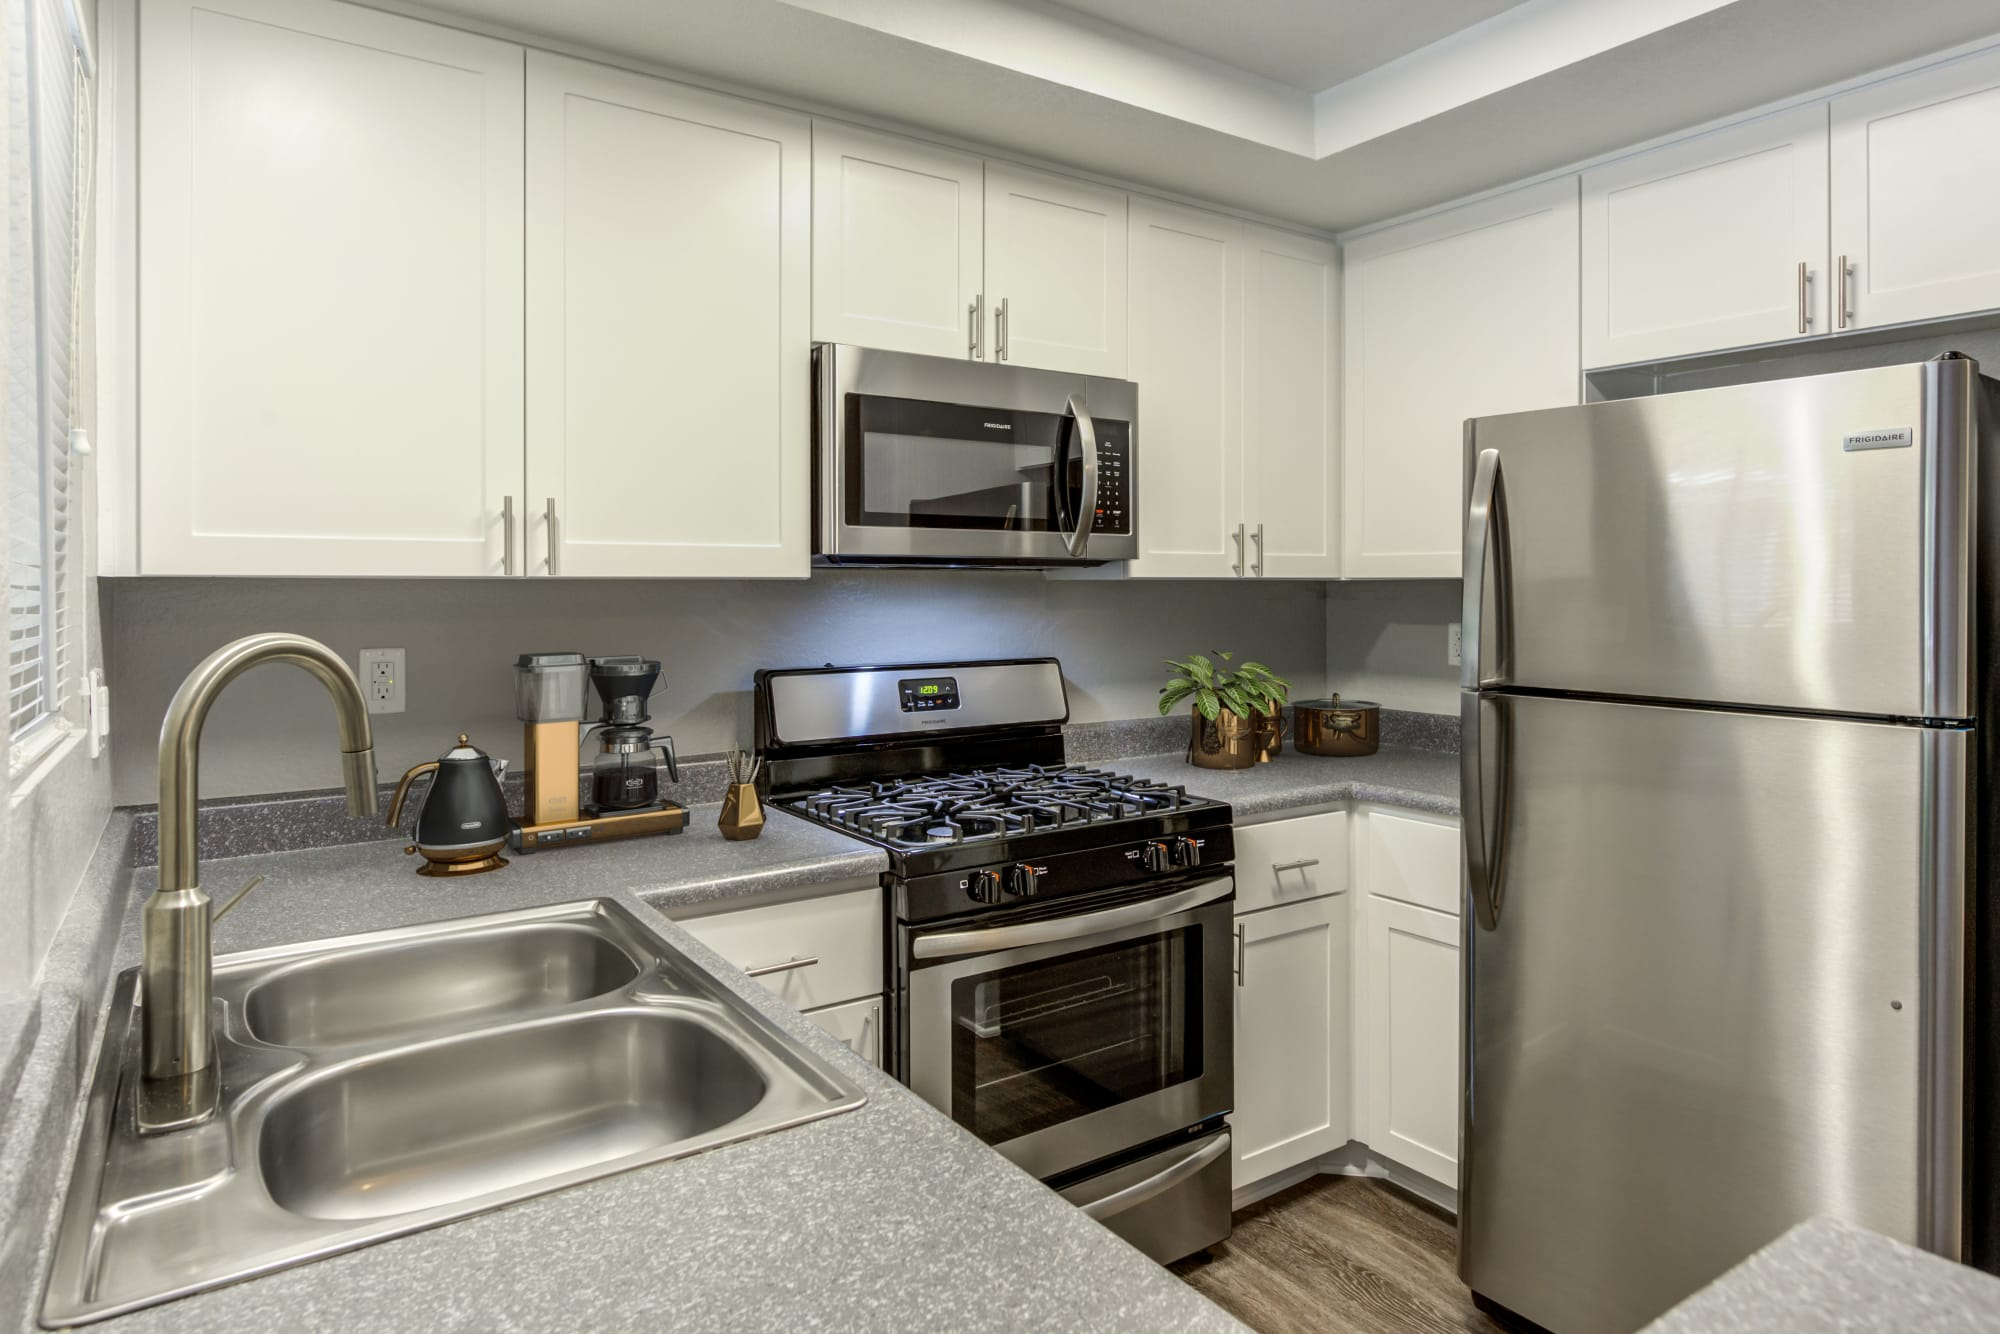 Renovated kitchen with white cabinets and stainless steel appliances at Village Oaks in Chino Hills, California